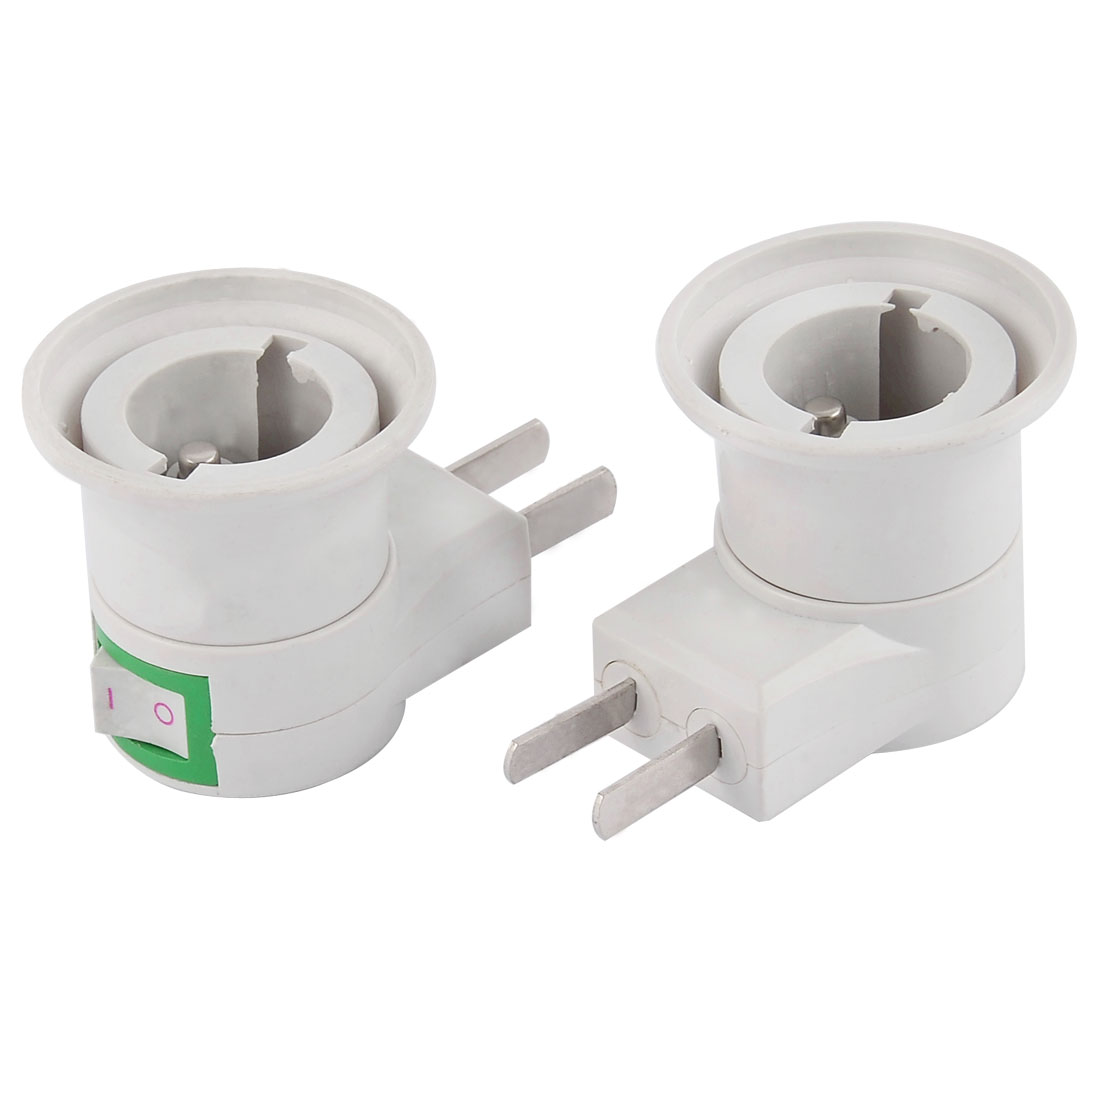 Home Plastic Metal L Shaped Mounting Bulb Lamp Socket Holder Adapter 2pcs